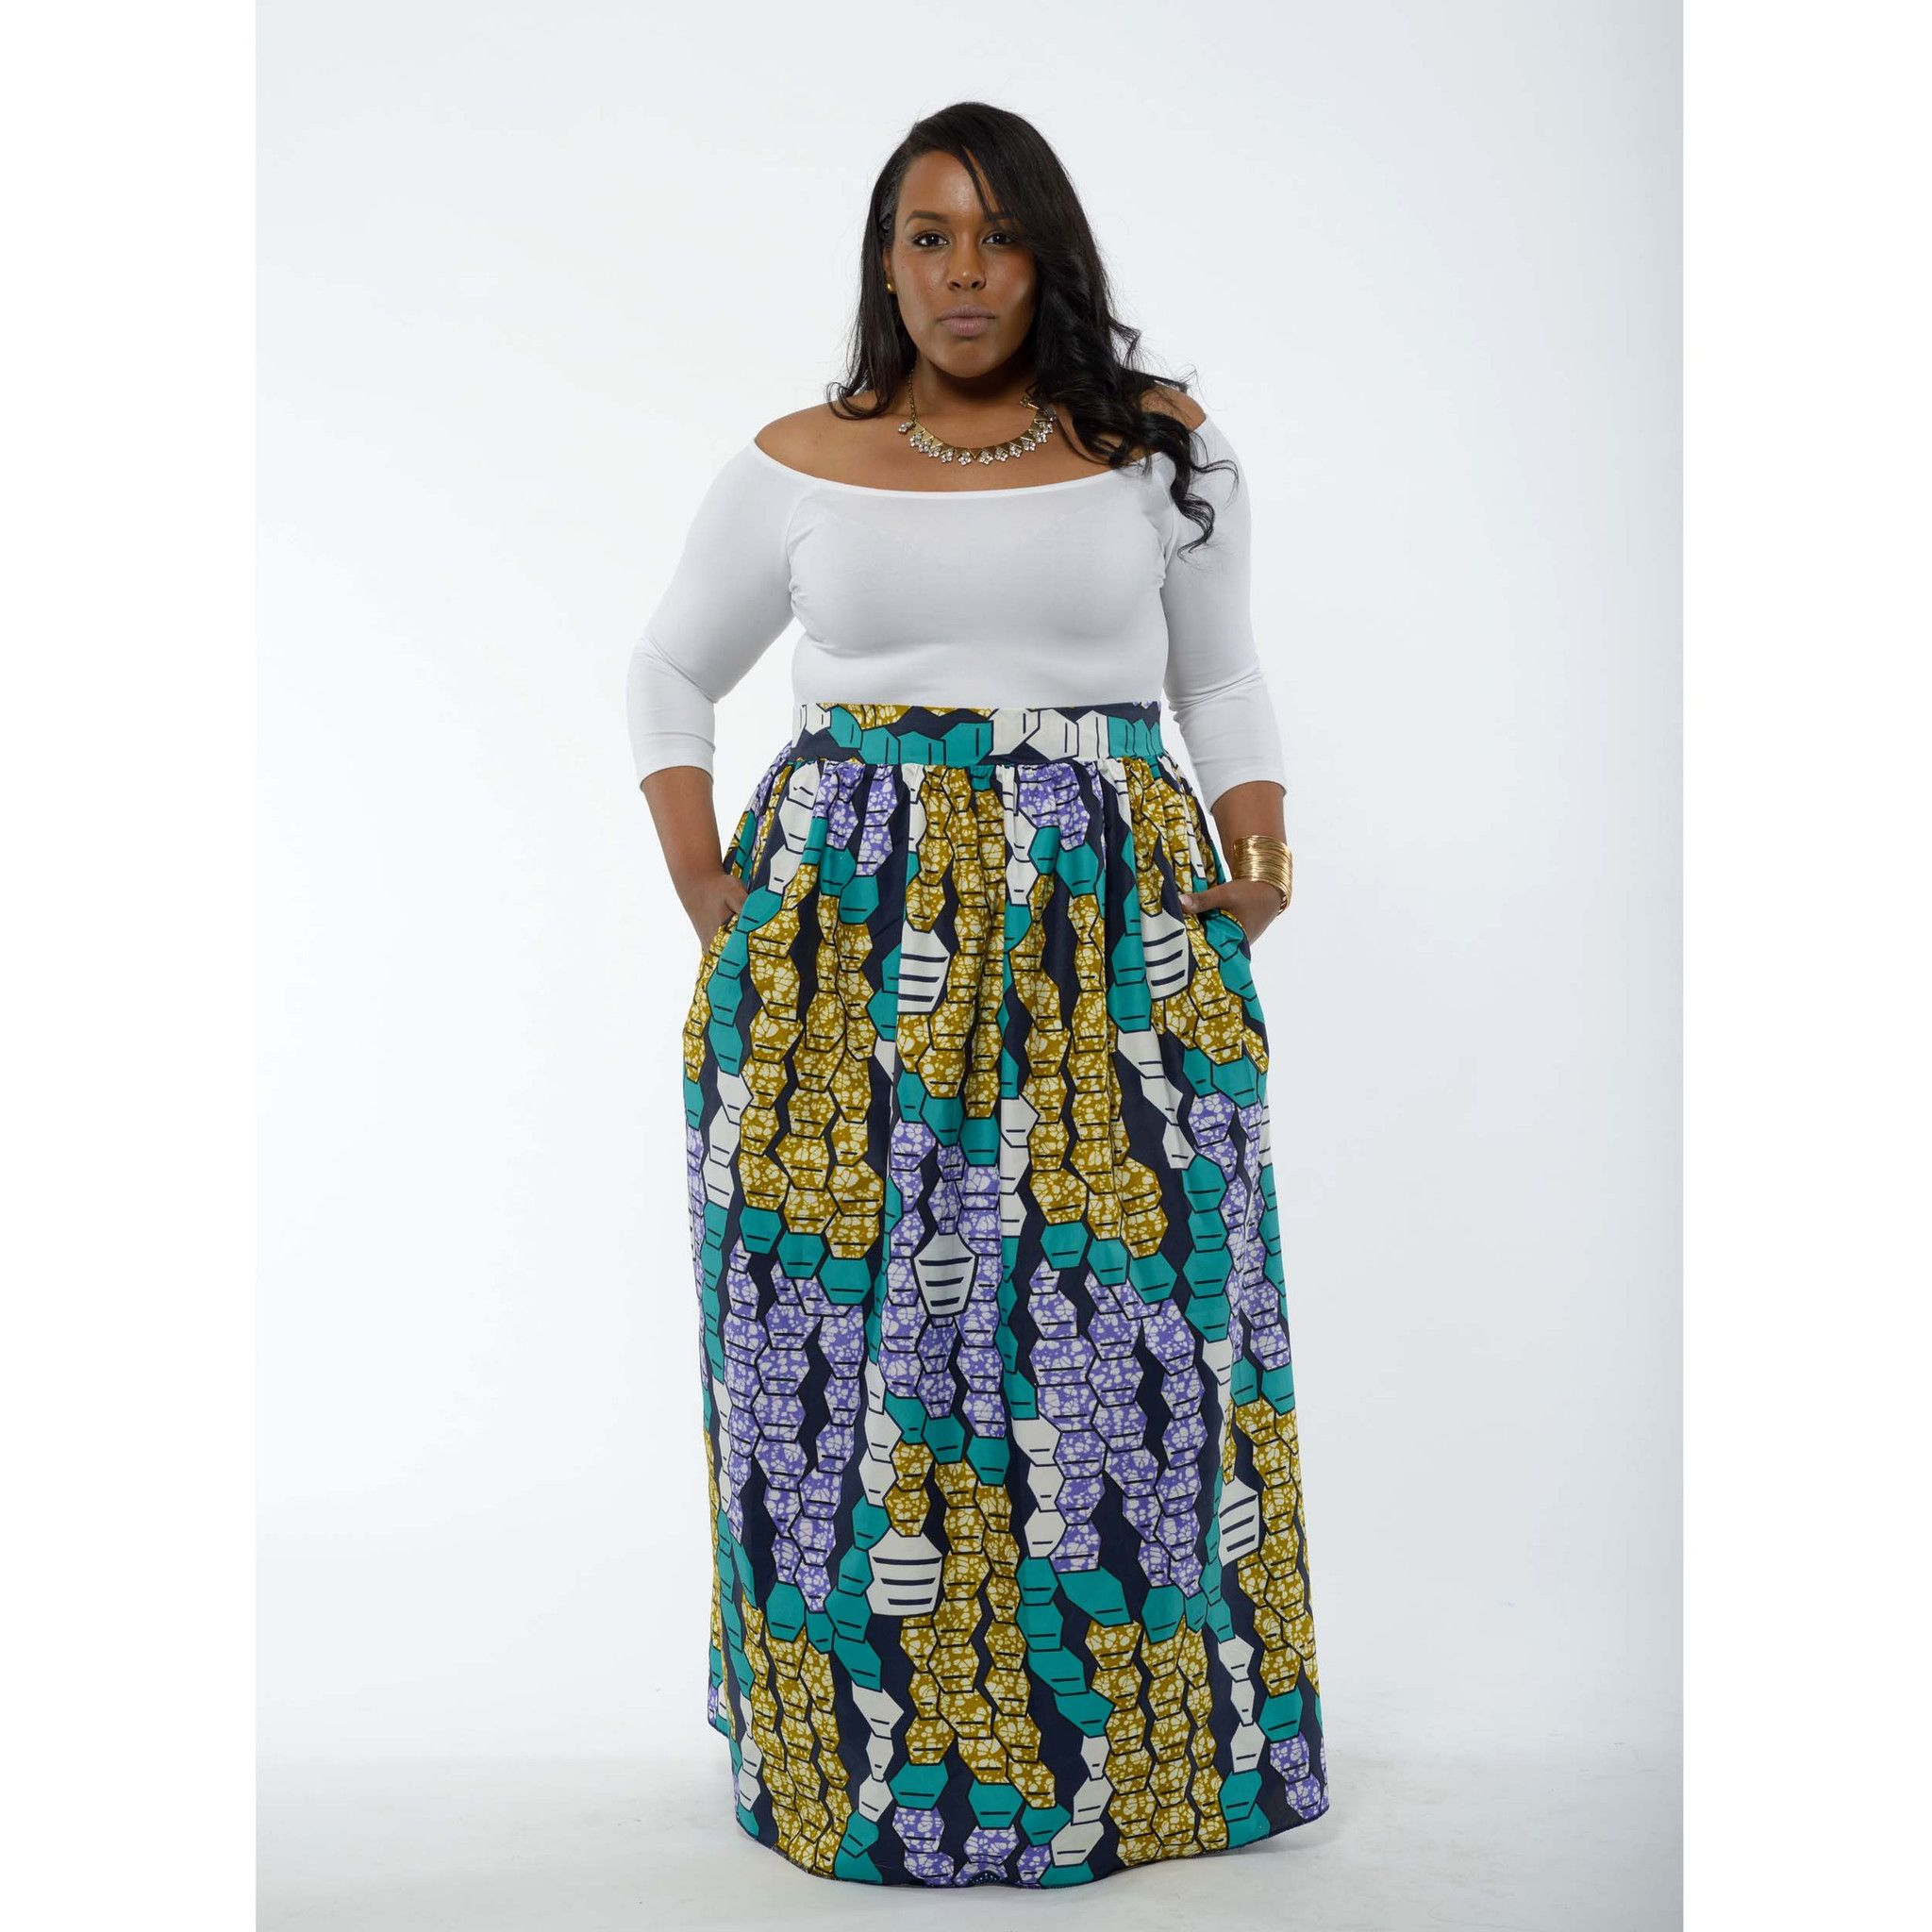 7083a6874b Chic African Print Maxi Skirt (Turquoise/White) | Ethnic Eclectic ...